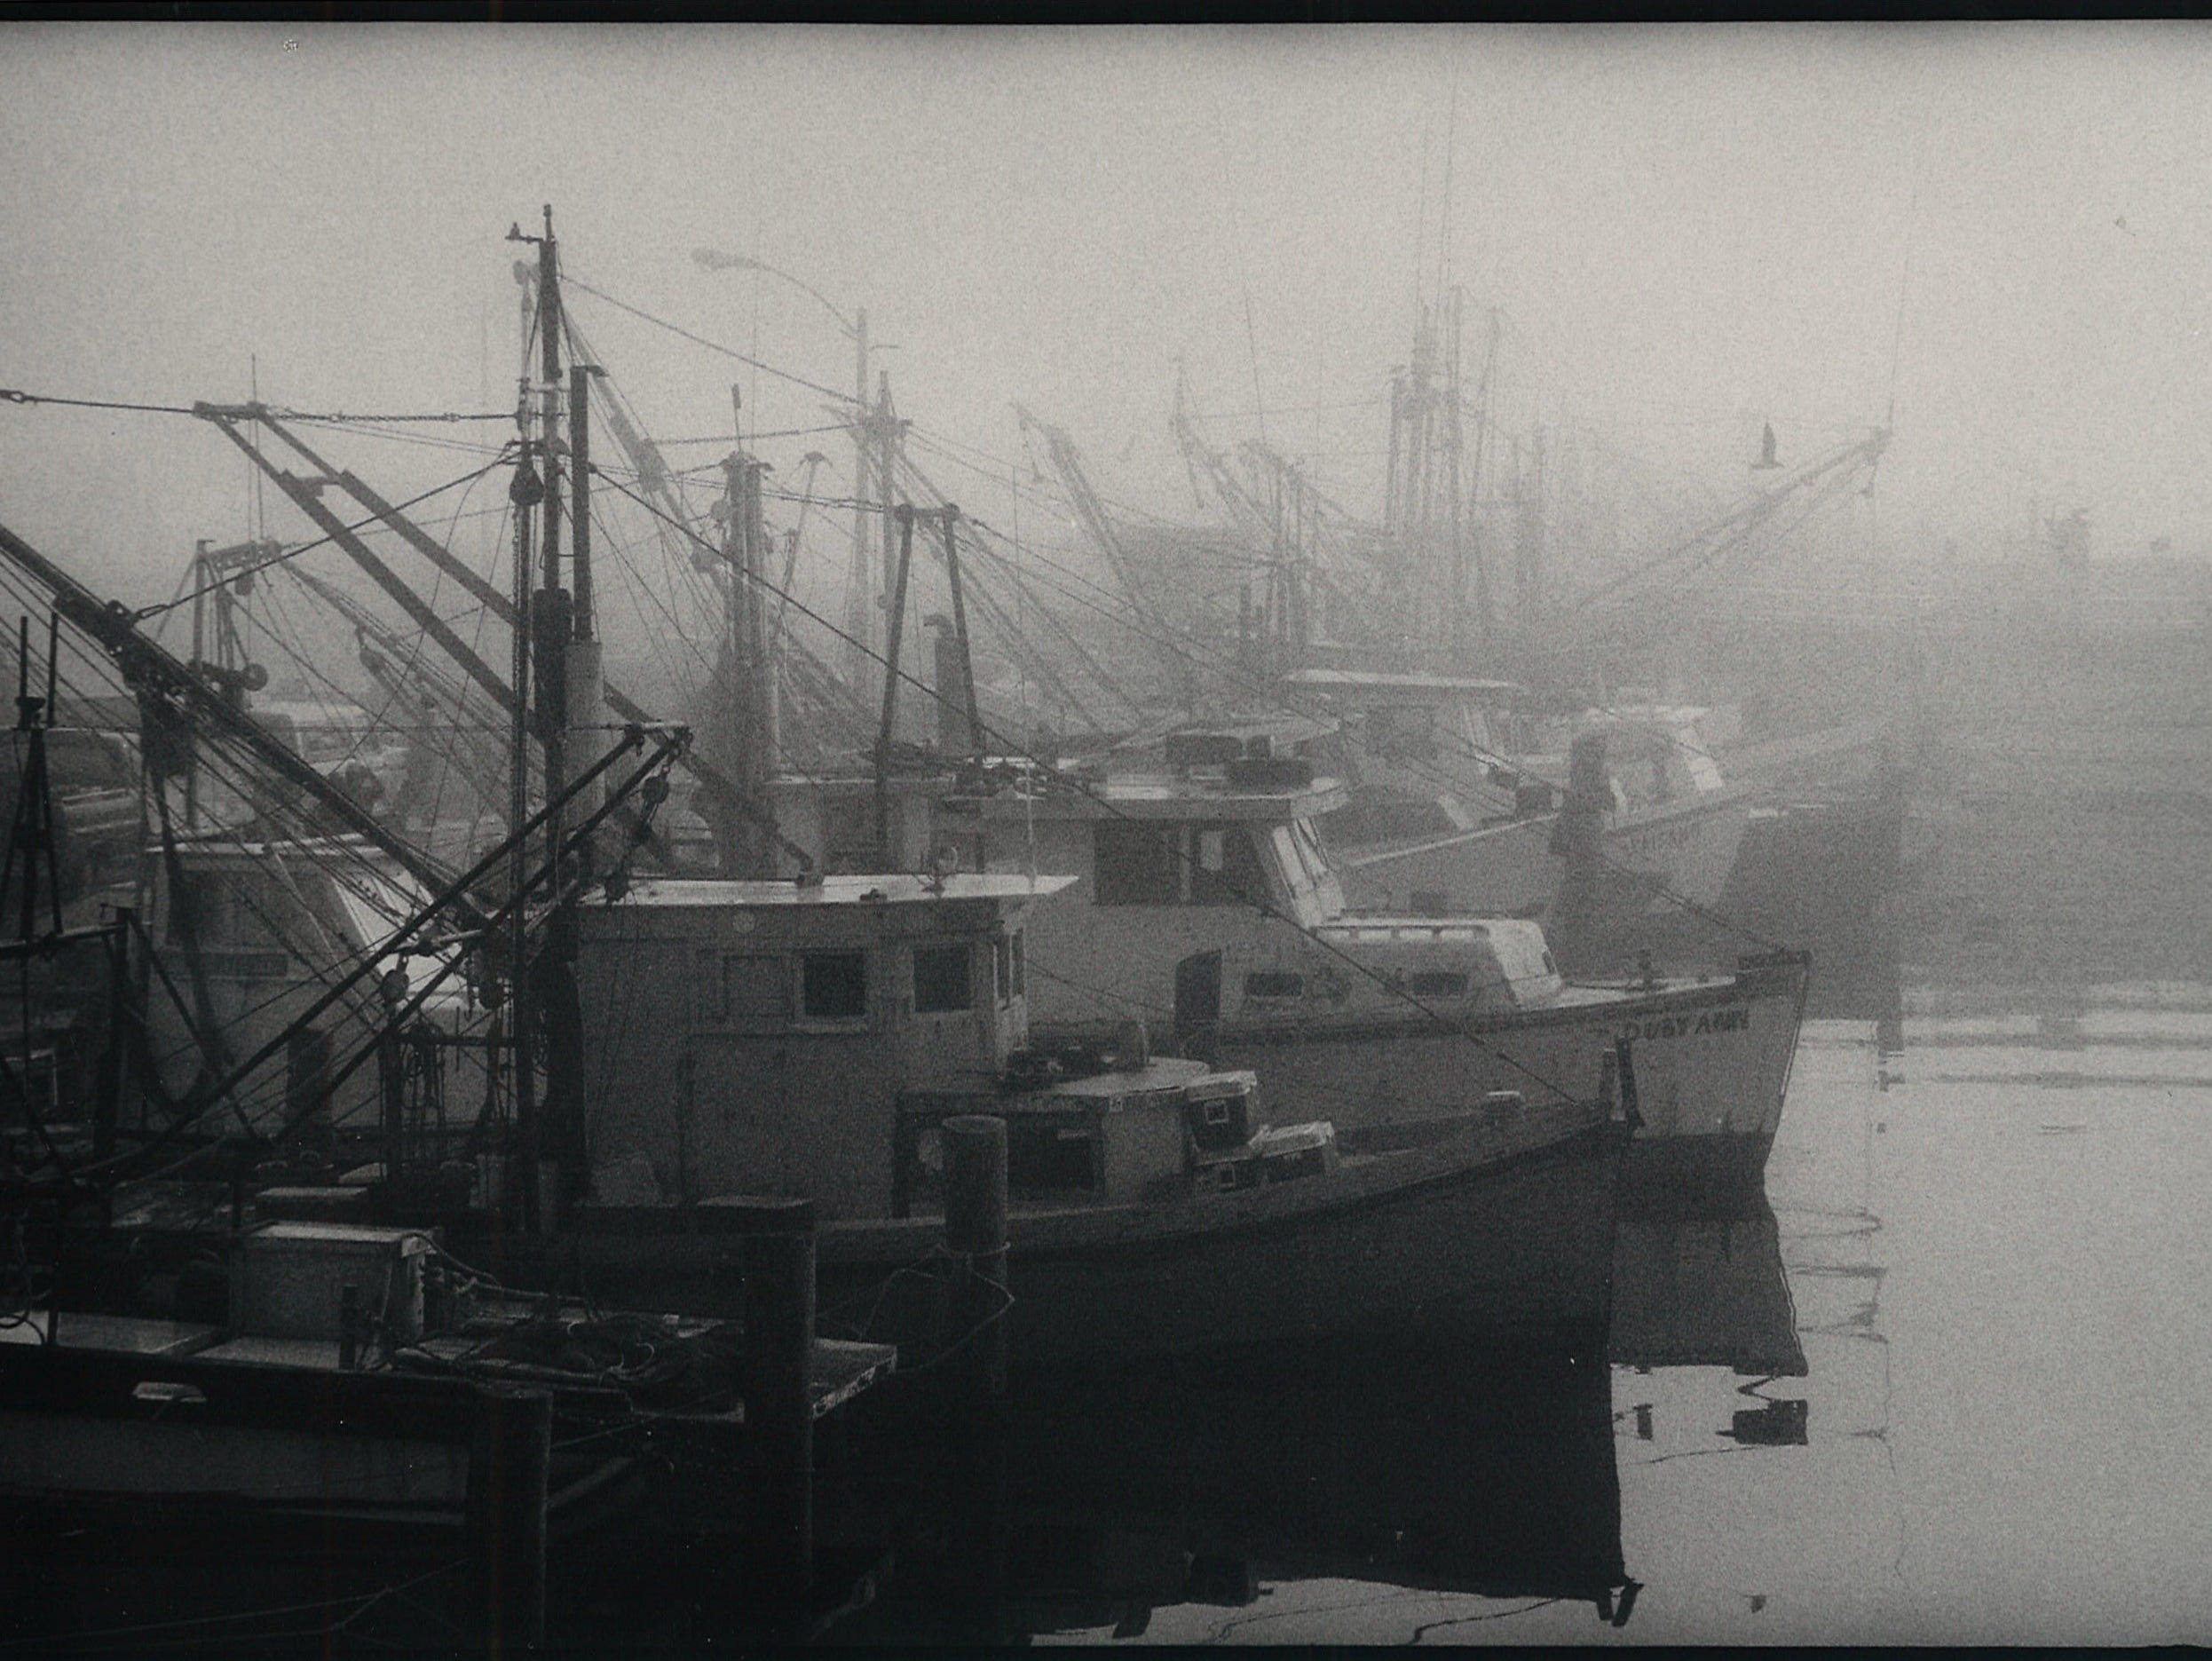 Shrimp boats at the fog-encased Peoples Street T-head in Corpus Christi on Nov. 18, 1986.